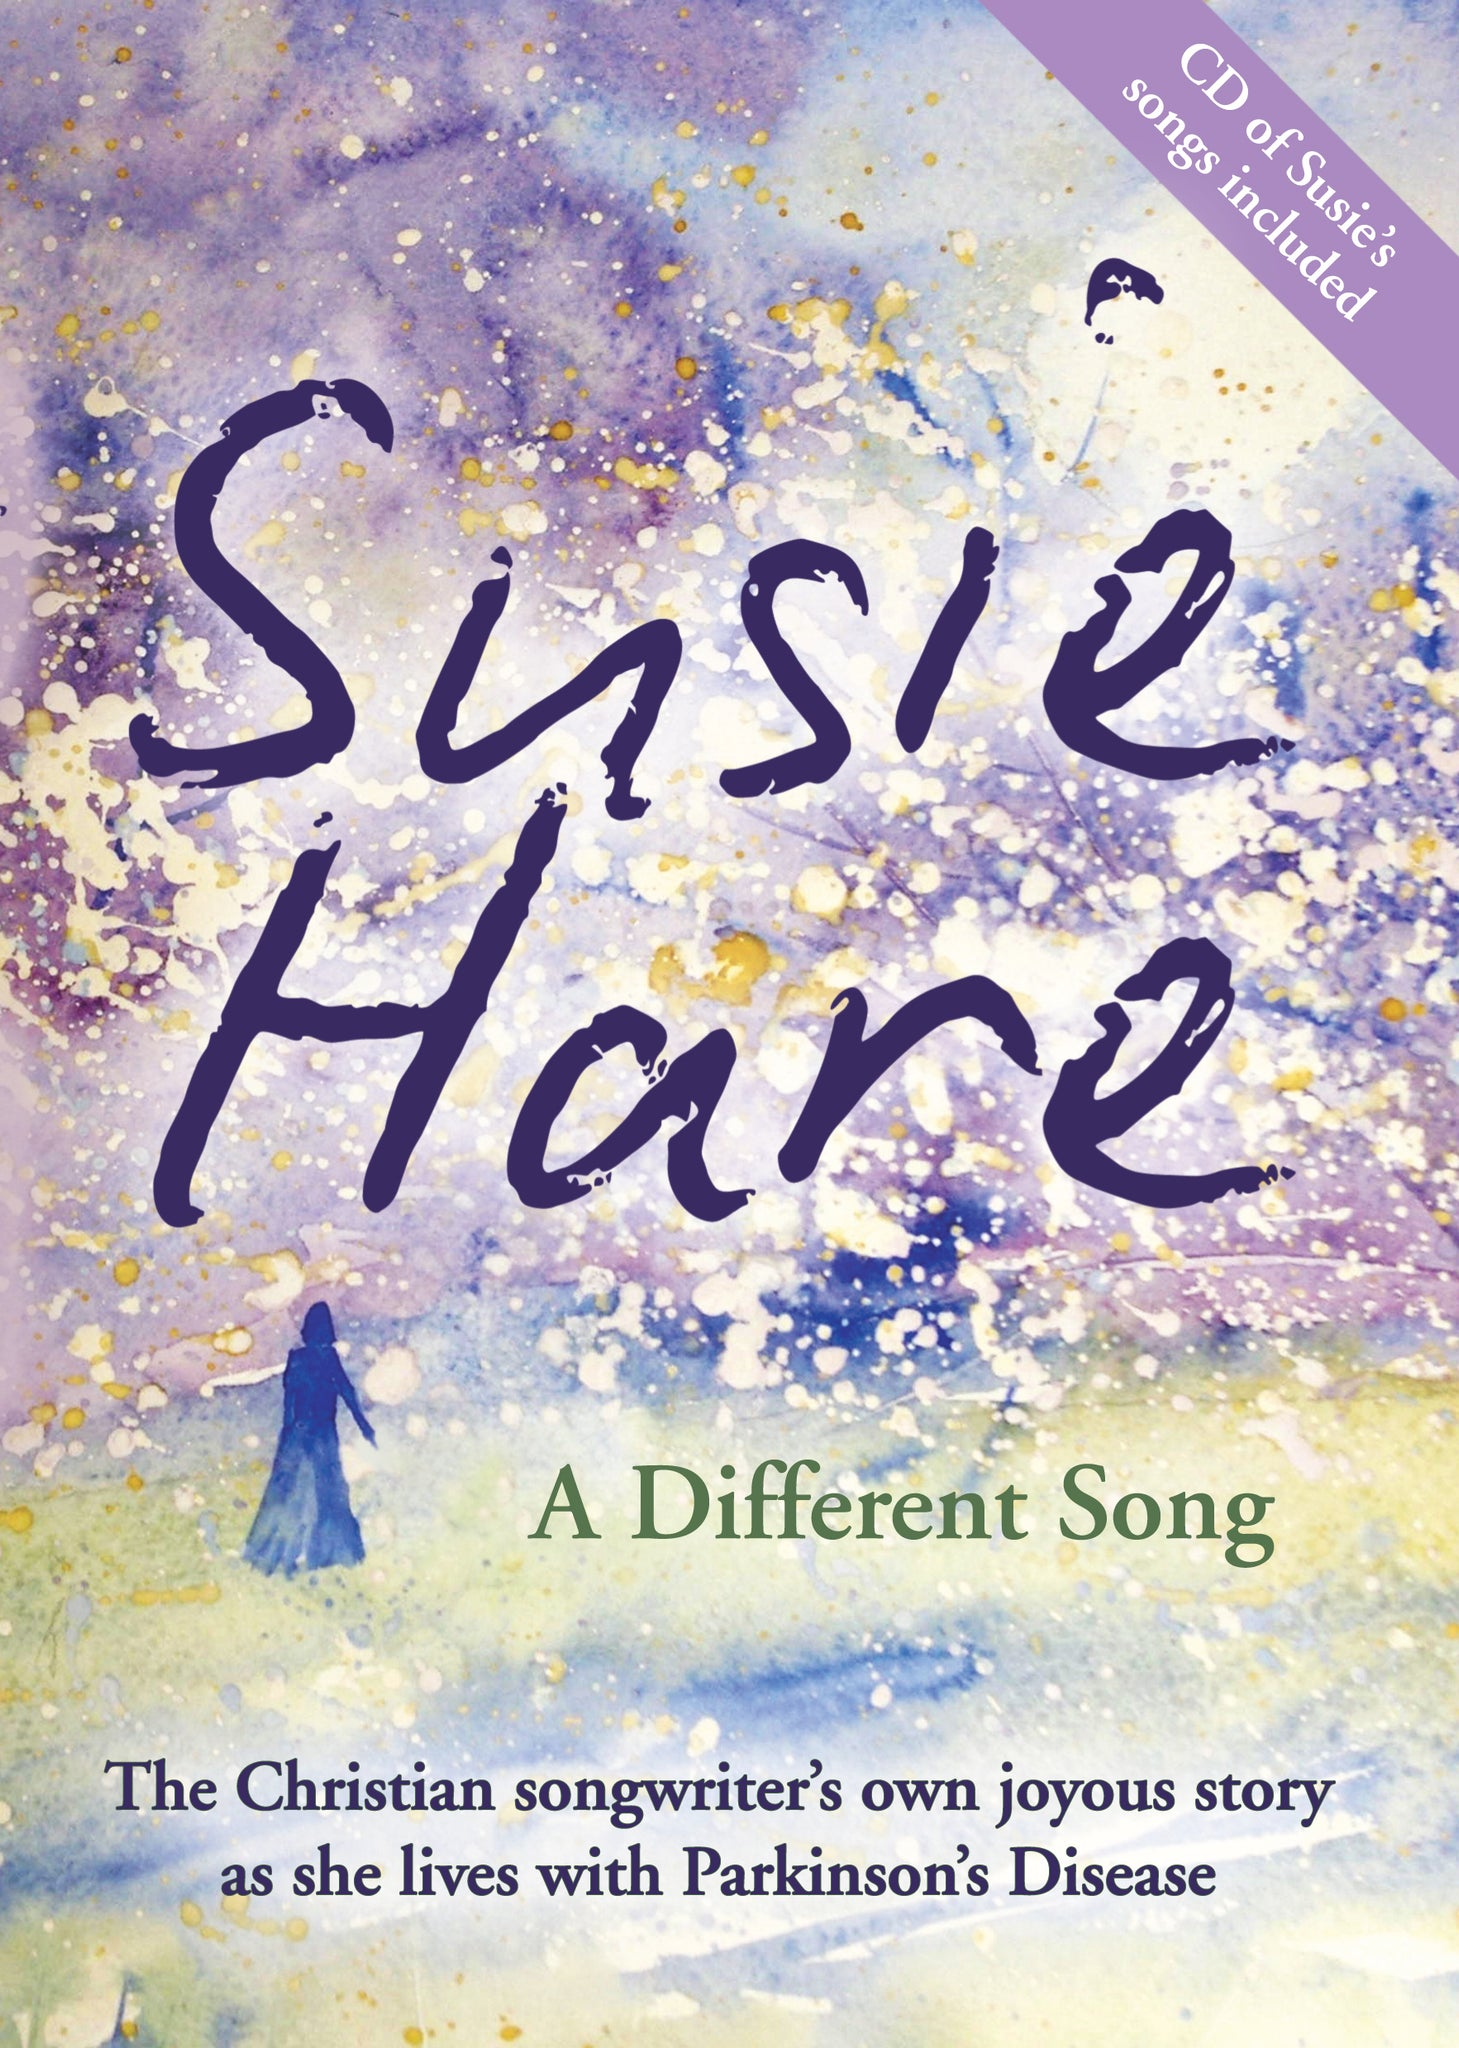 Susie Hare - A Different SongSusie Hare - A Different Song